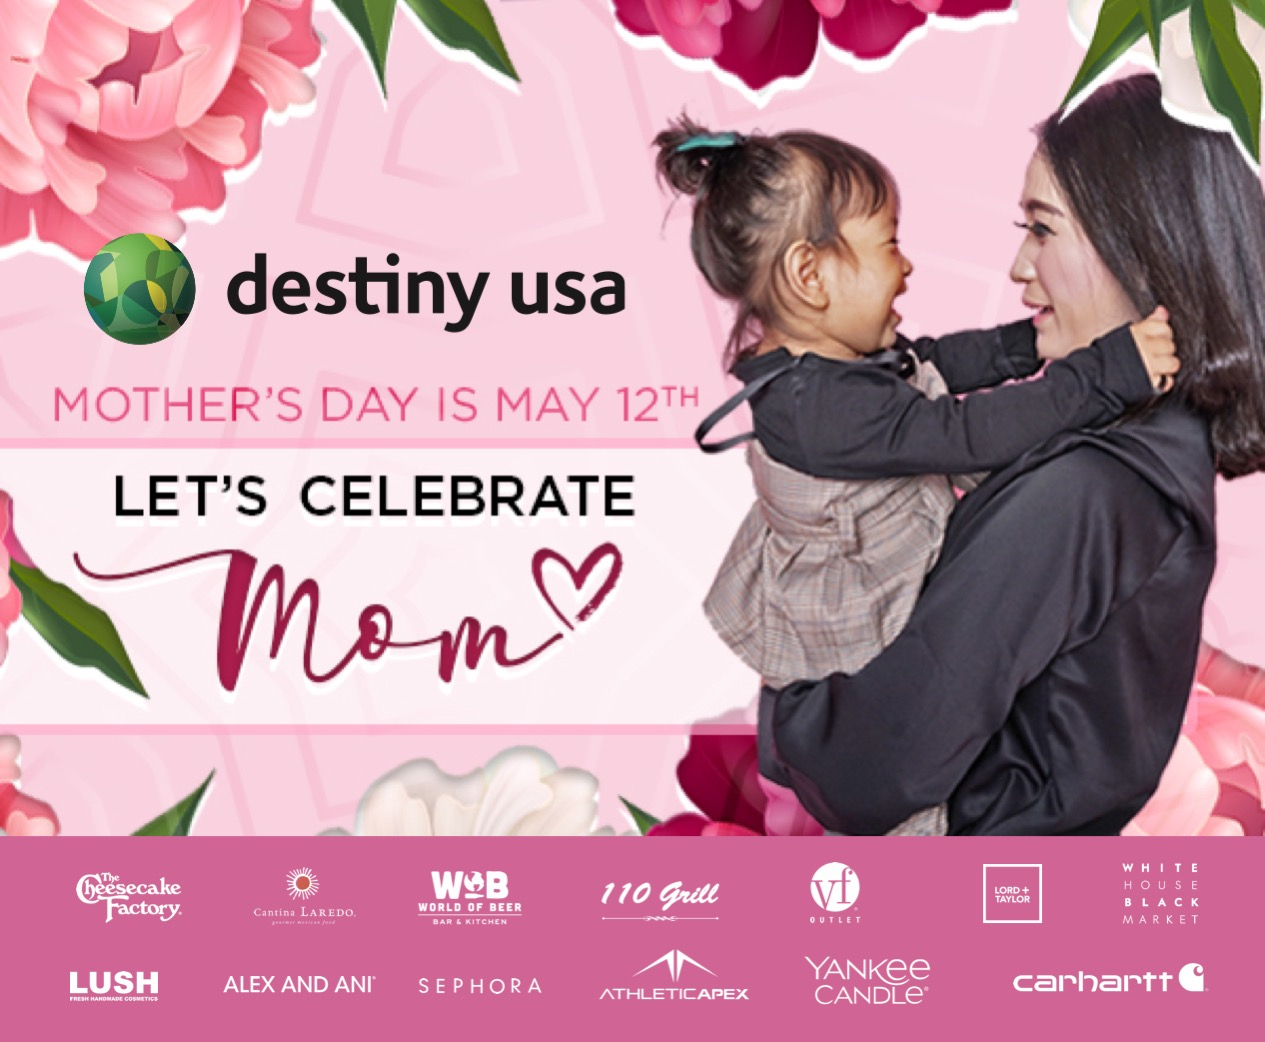 2019 Emailer mothers day DUSA